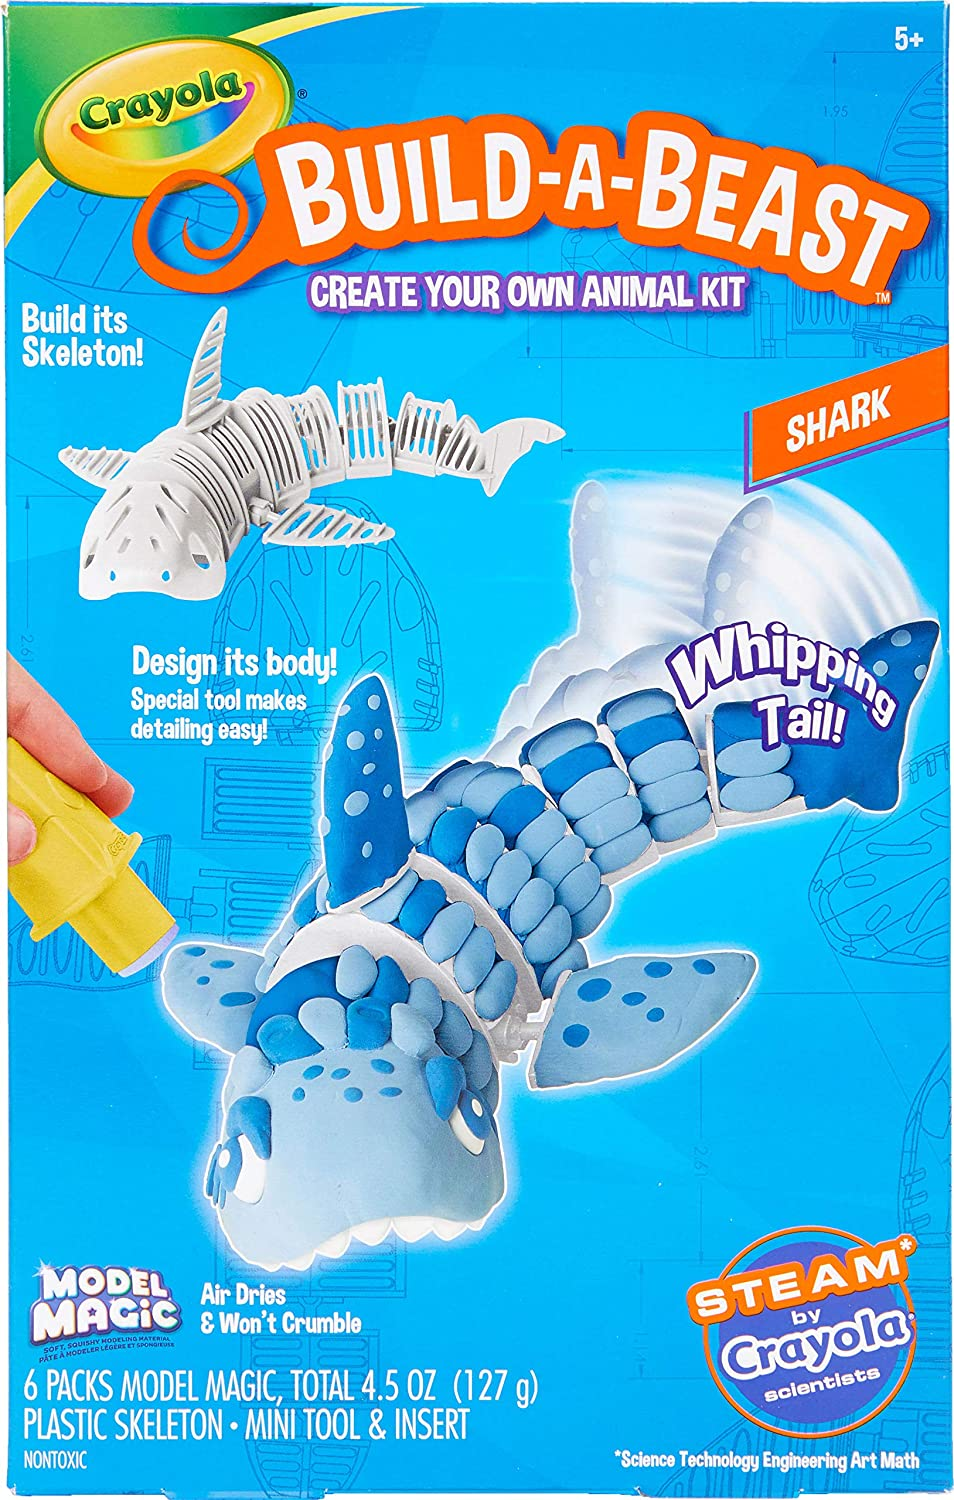 Crayola Build A Beast Shark, Model Magic Craft Kit, Steam/ Stem Learning Toys, Gift for Kids, 5, 6, 7, 8